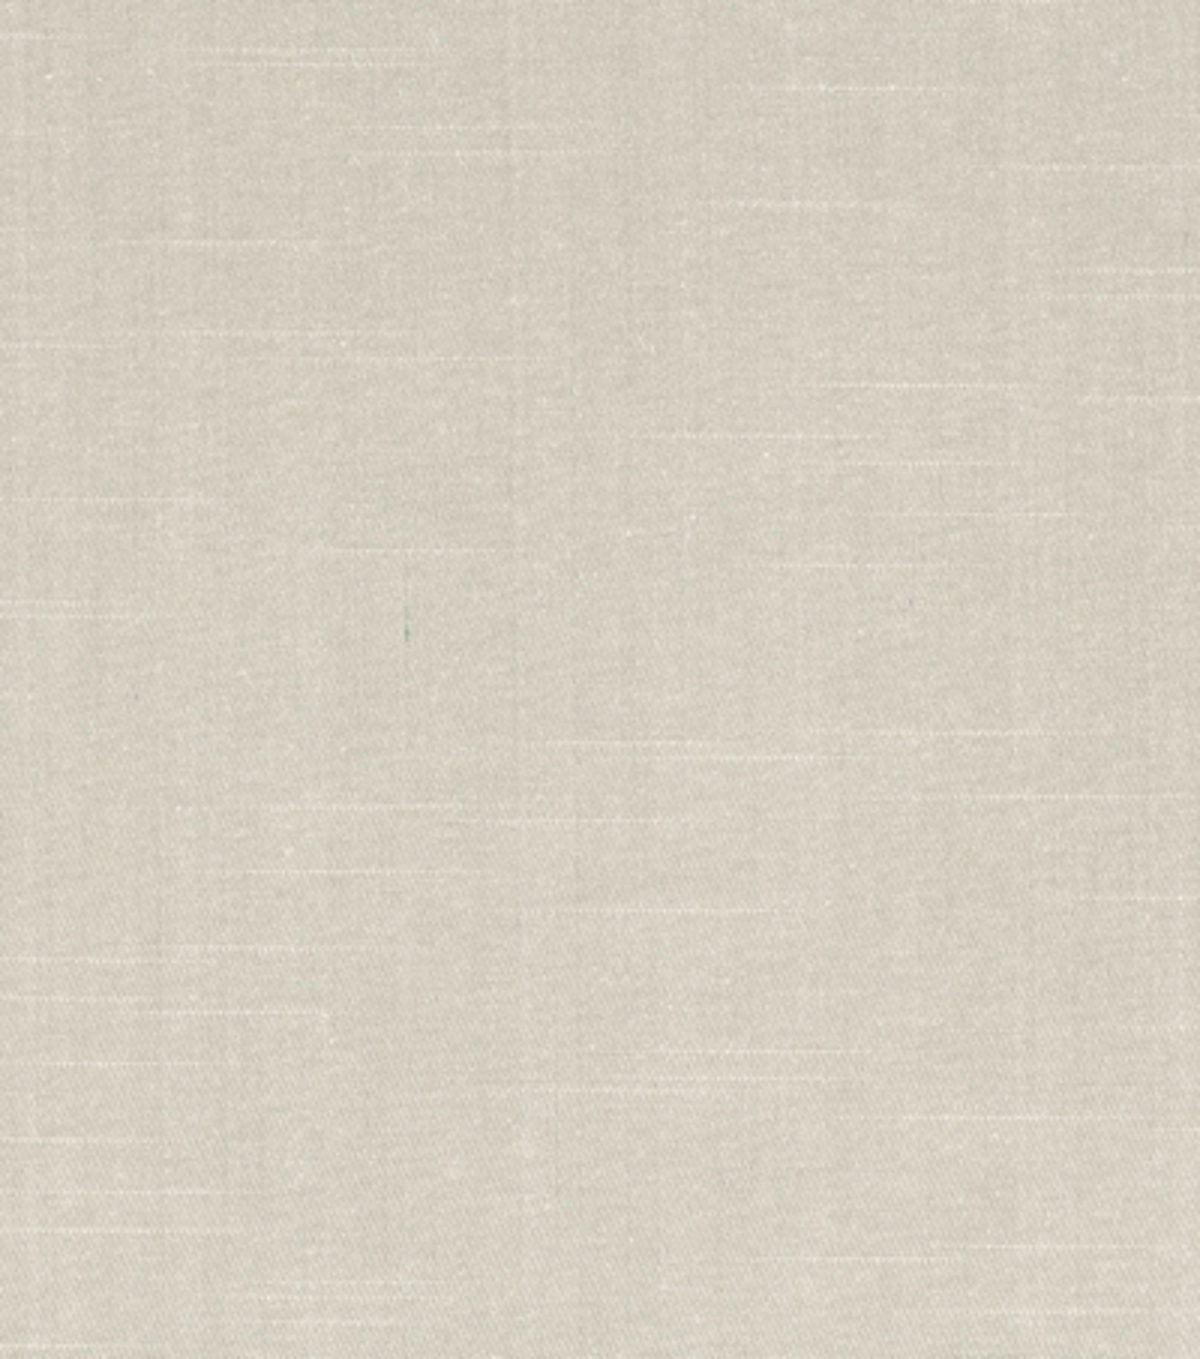 Home Decor 8\u0022x8\u0022 Fabric Swatch-Richloom Studio Aspen Silver